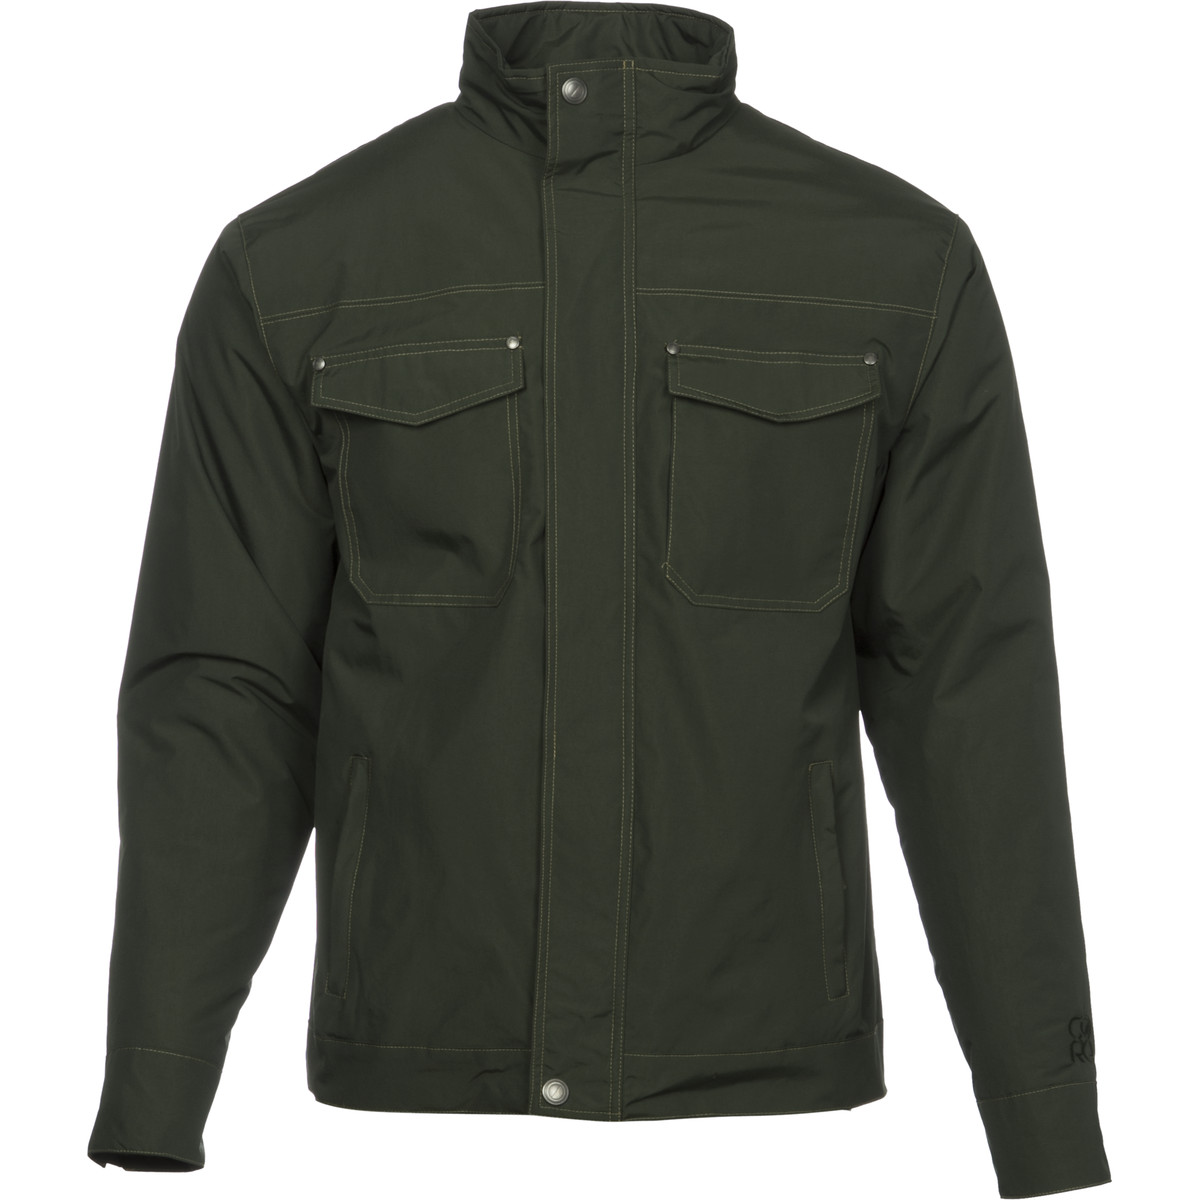 Core Concepts Builder Jacket